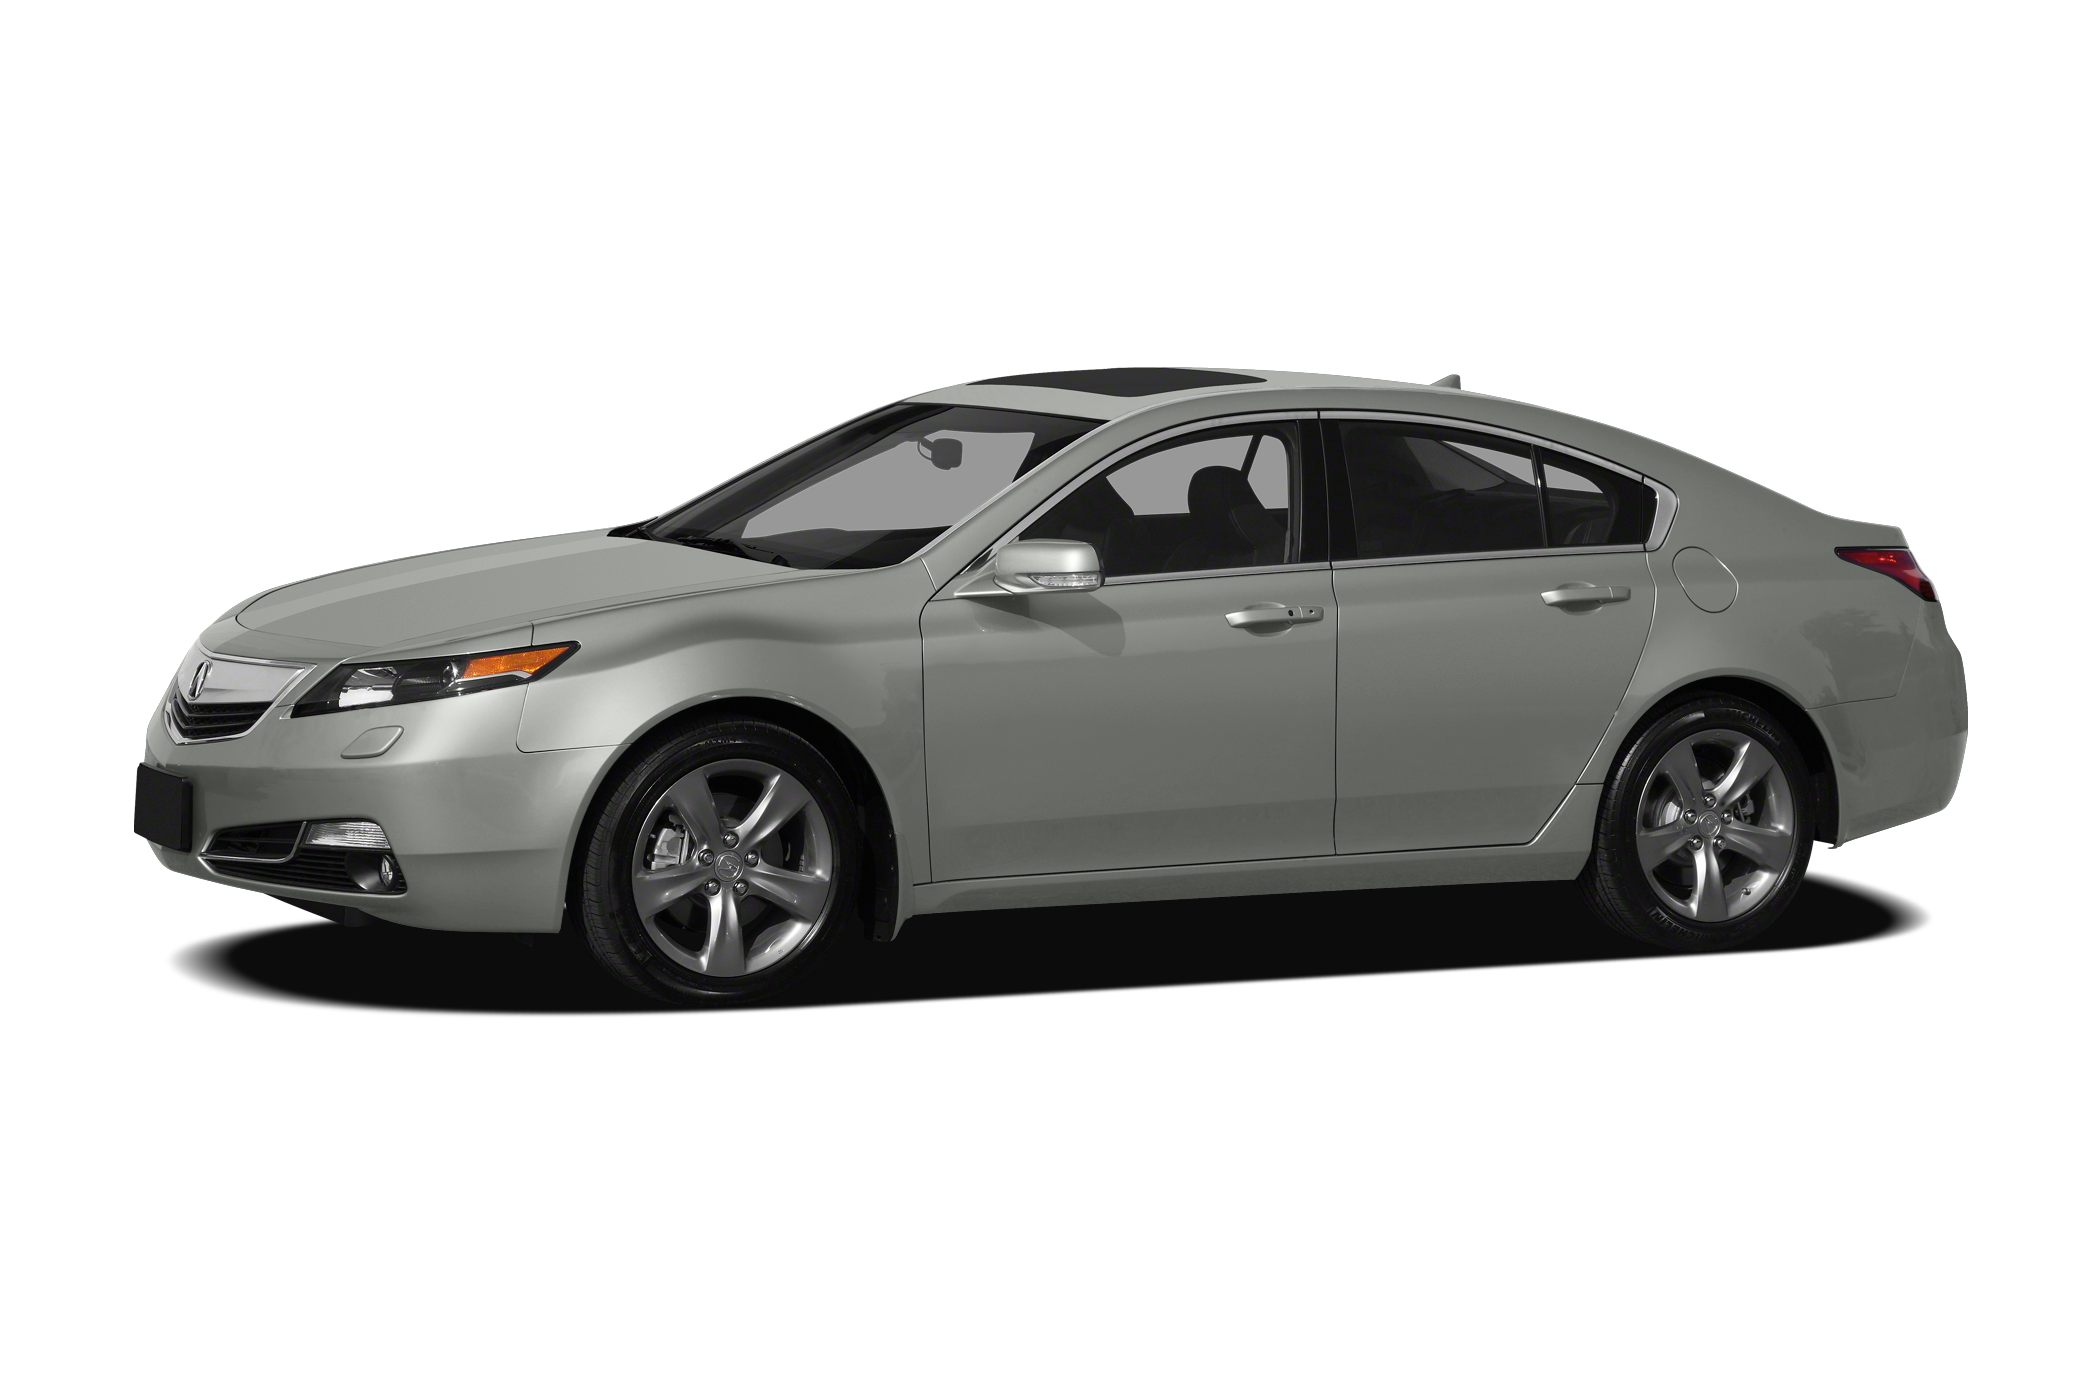 2012 Acura TL